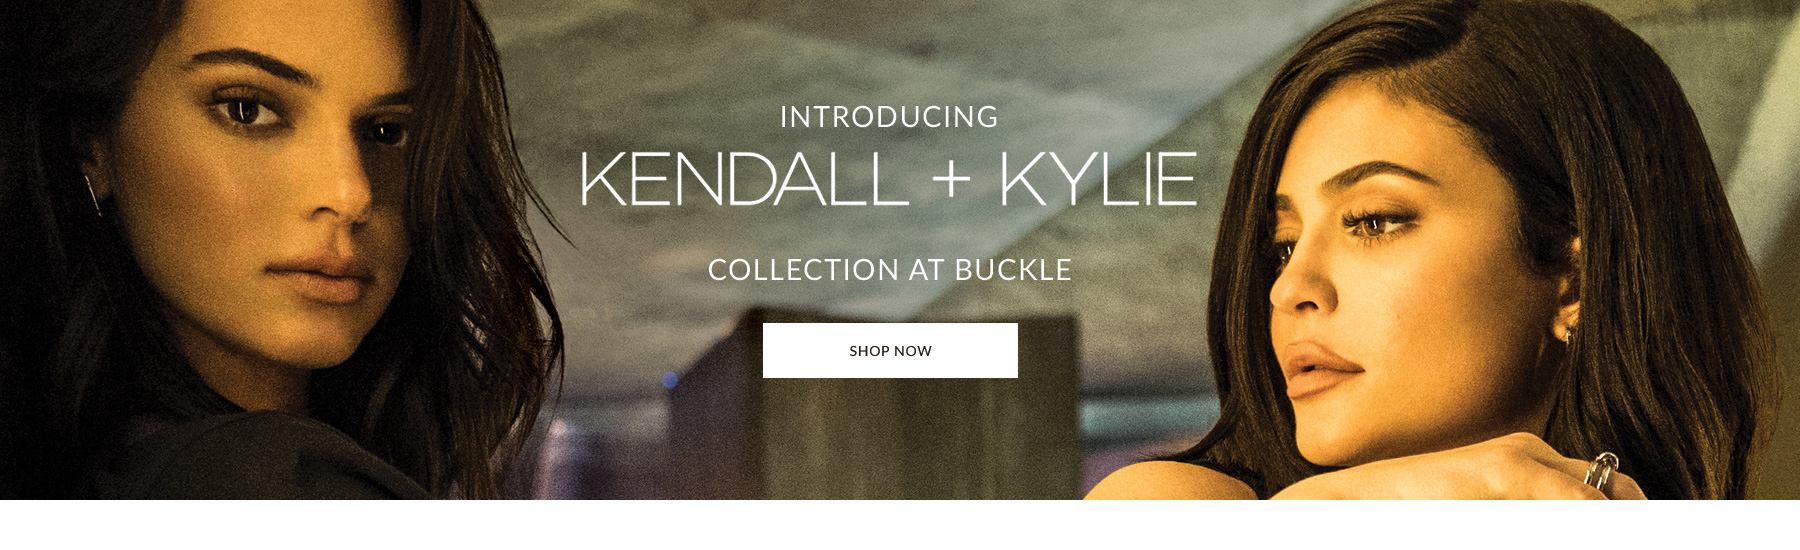 Introducing Kendall + Kylie Collection at Buckle. Shop Kendall + Kylie Now Banner.